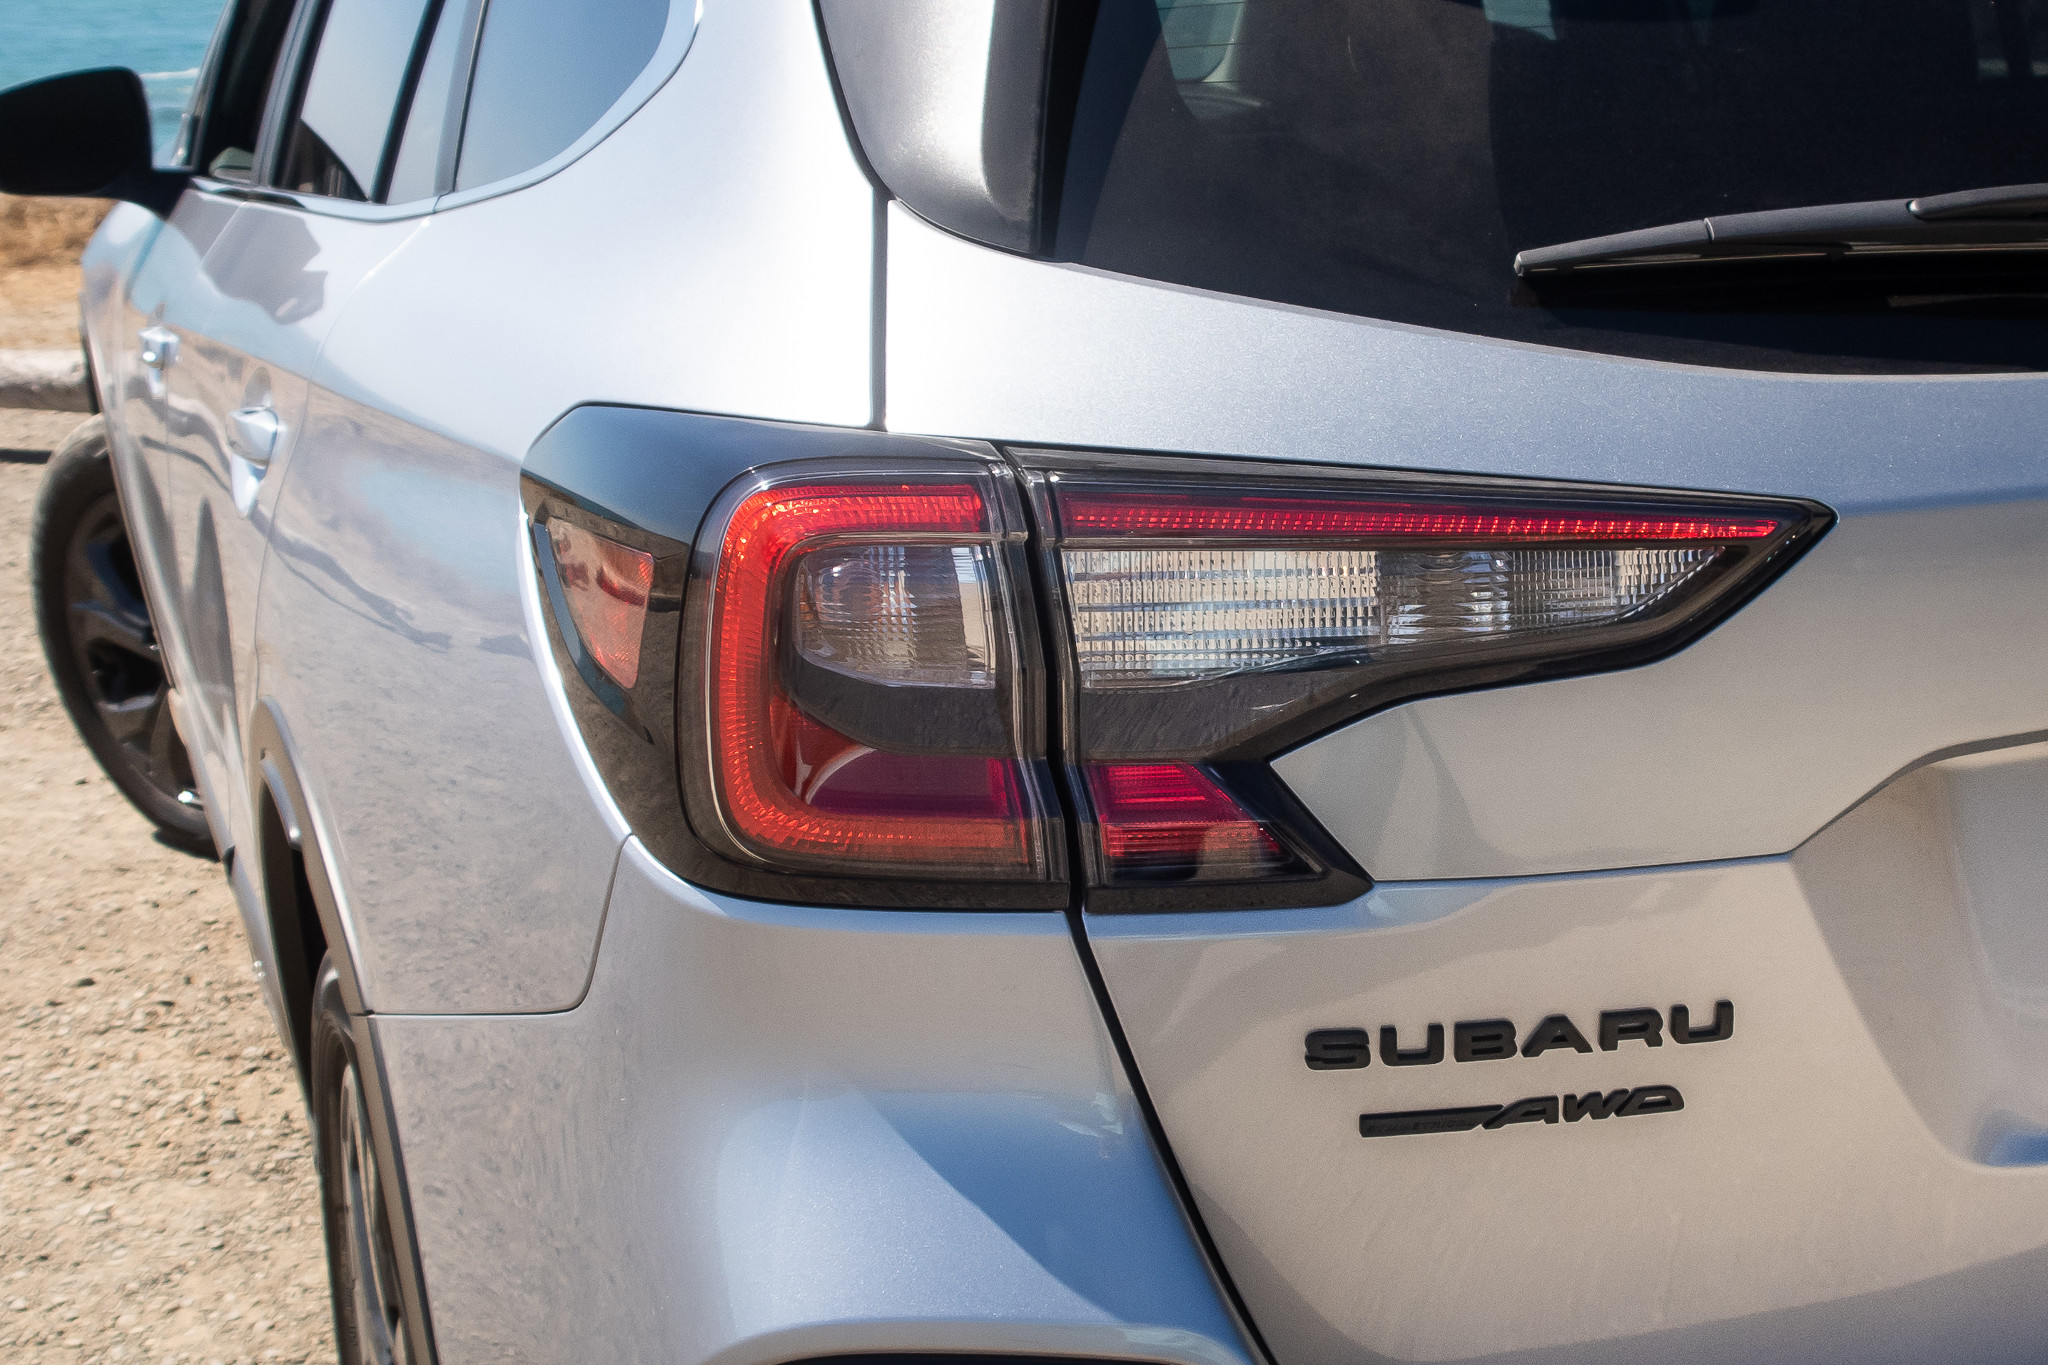 Top 5 Reviews and Videos of the Week: 2020 Subaru Outback, Toyota Corolla Shine